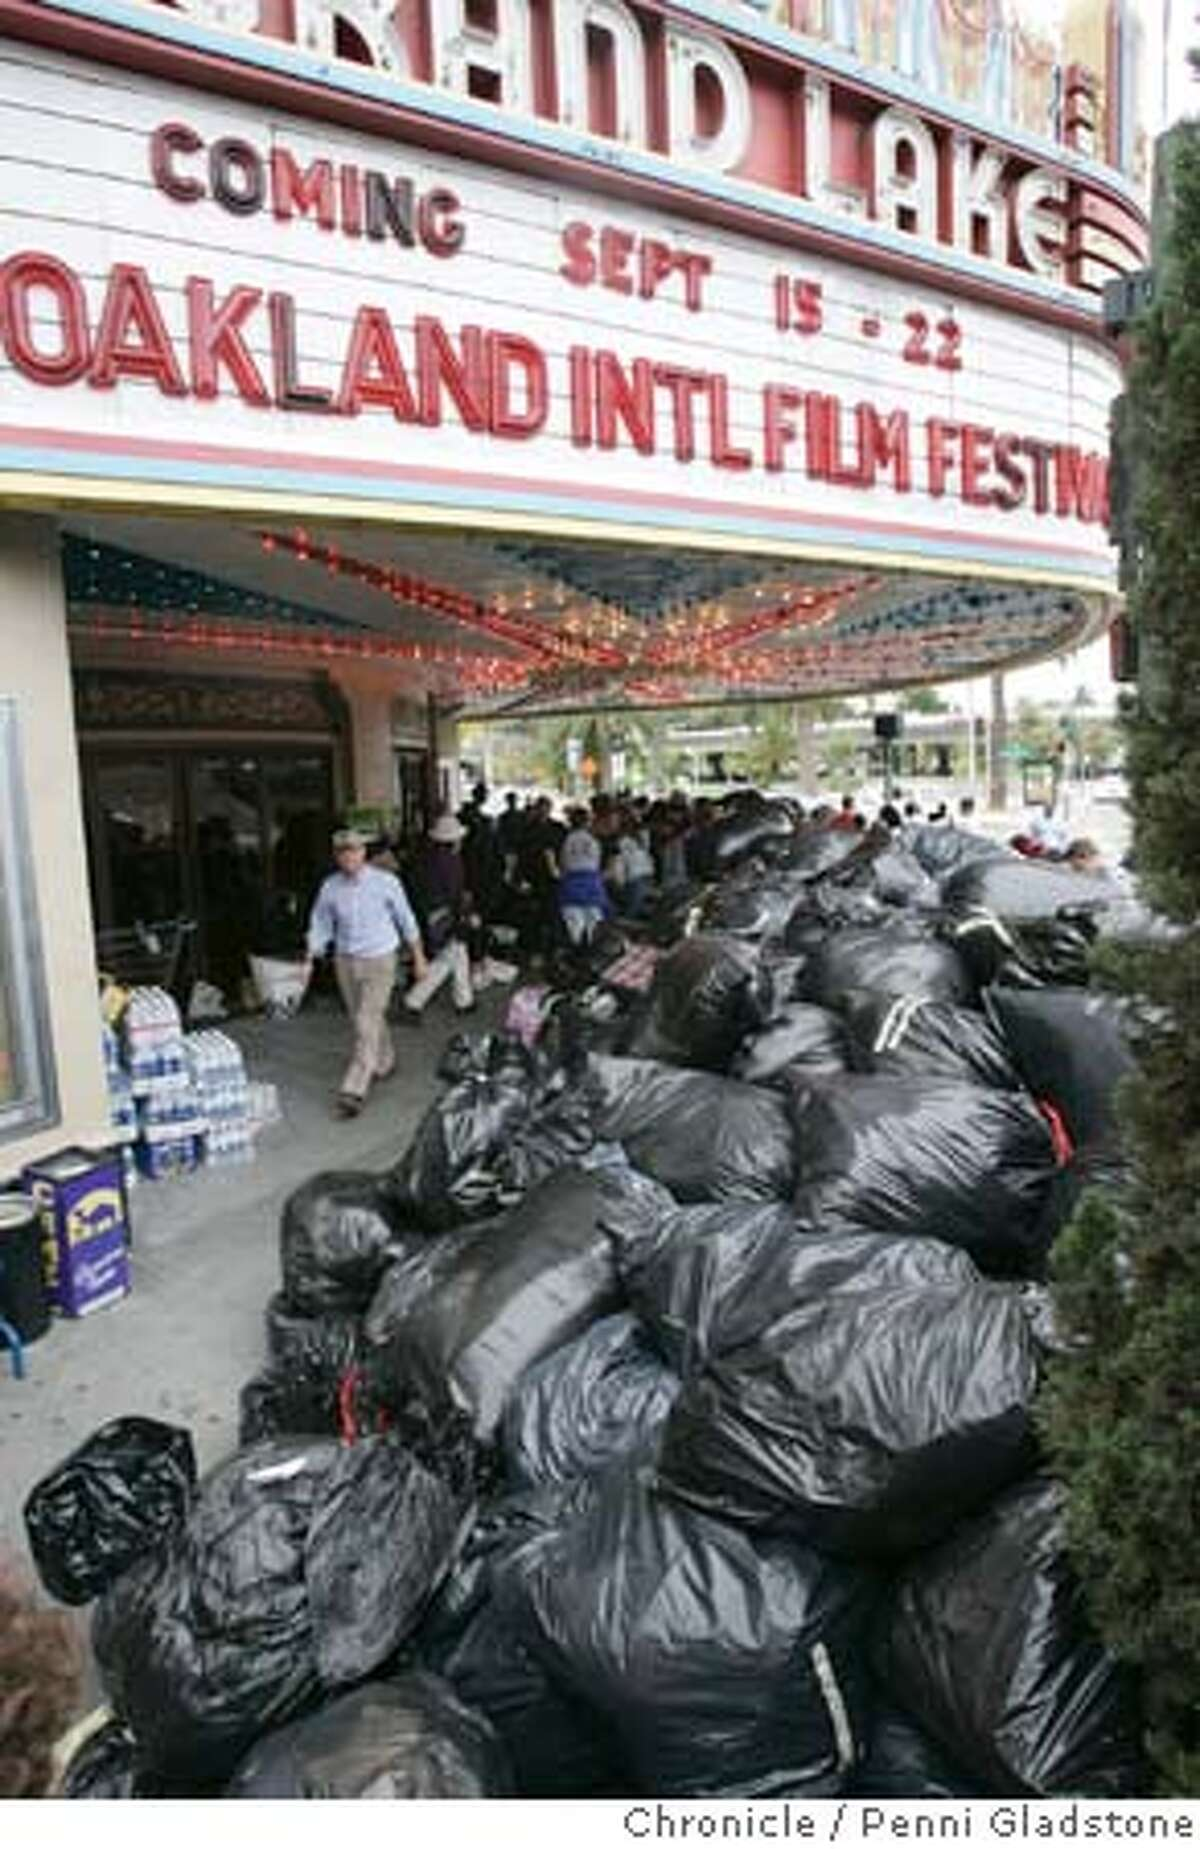 KATRIINA_GRANDLAKE_0046_PG.JPG GRAND LAKE THEATER owner organized a collection drive to help victims and refugees of Hurricane Katrina. tons of supplies in garbage bags wait for trucks to pick up goods. Many people sorted and collected San Francisco Chronicle, Penni Gladstone Photo taken on 9/8/05, in Oakland,